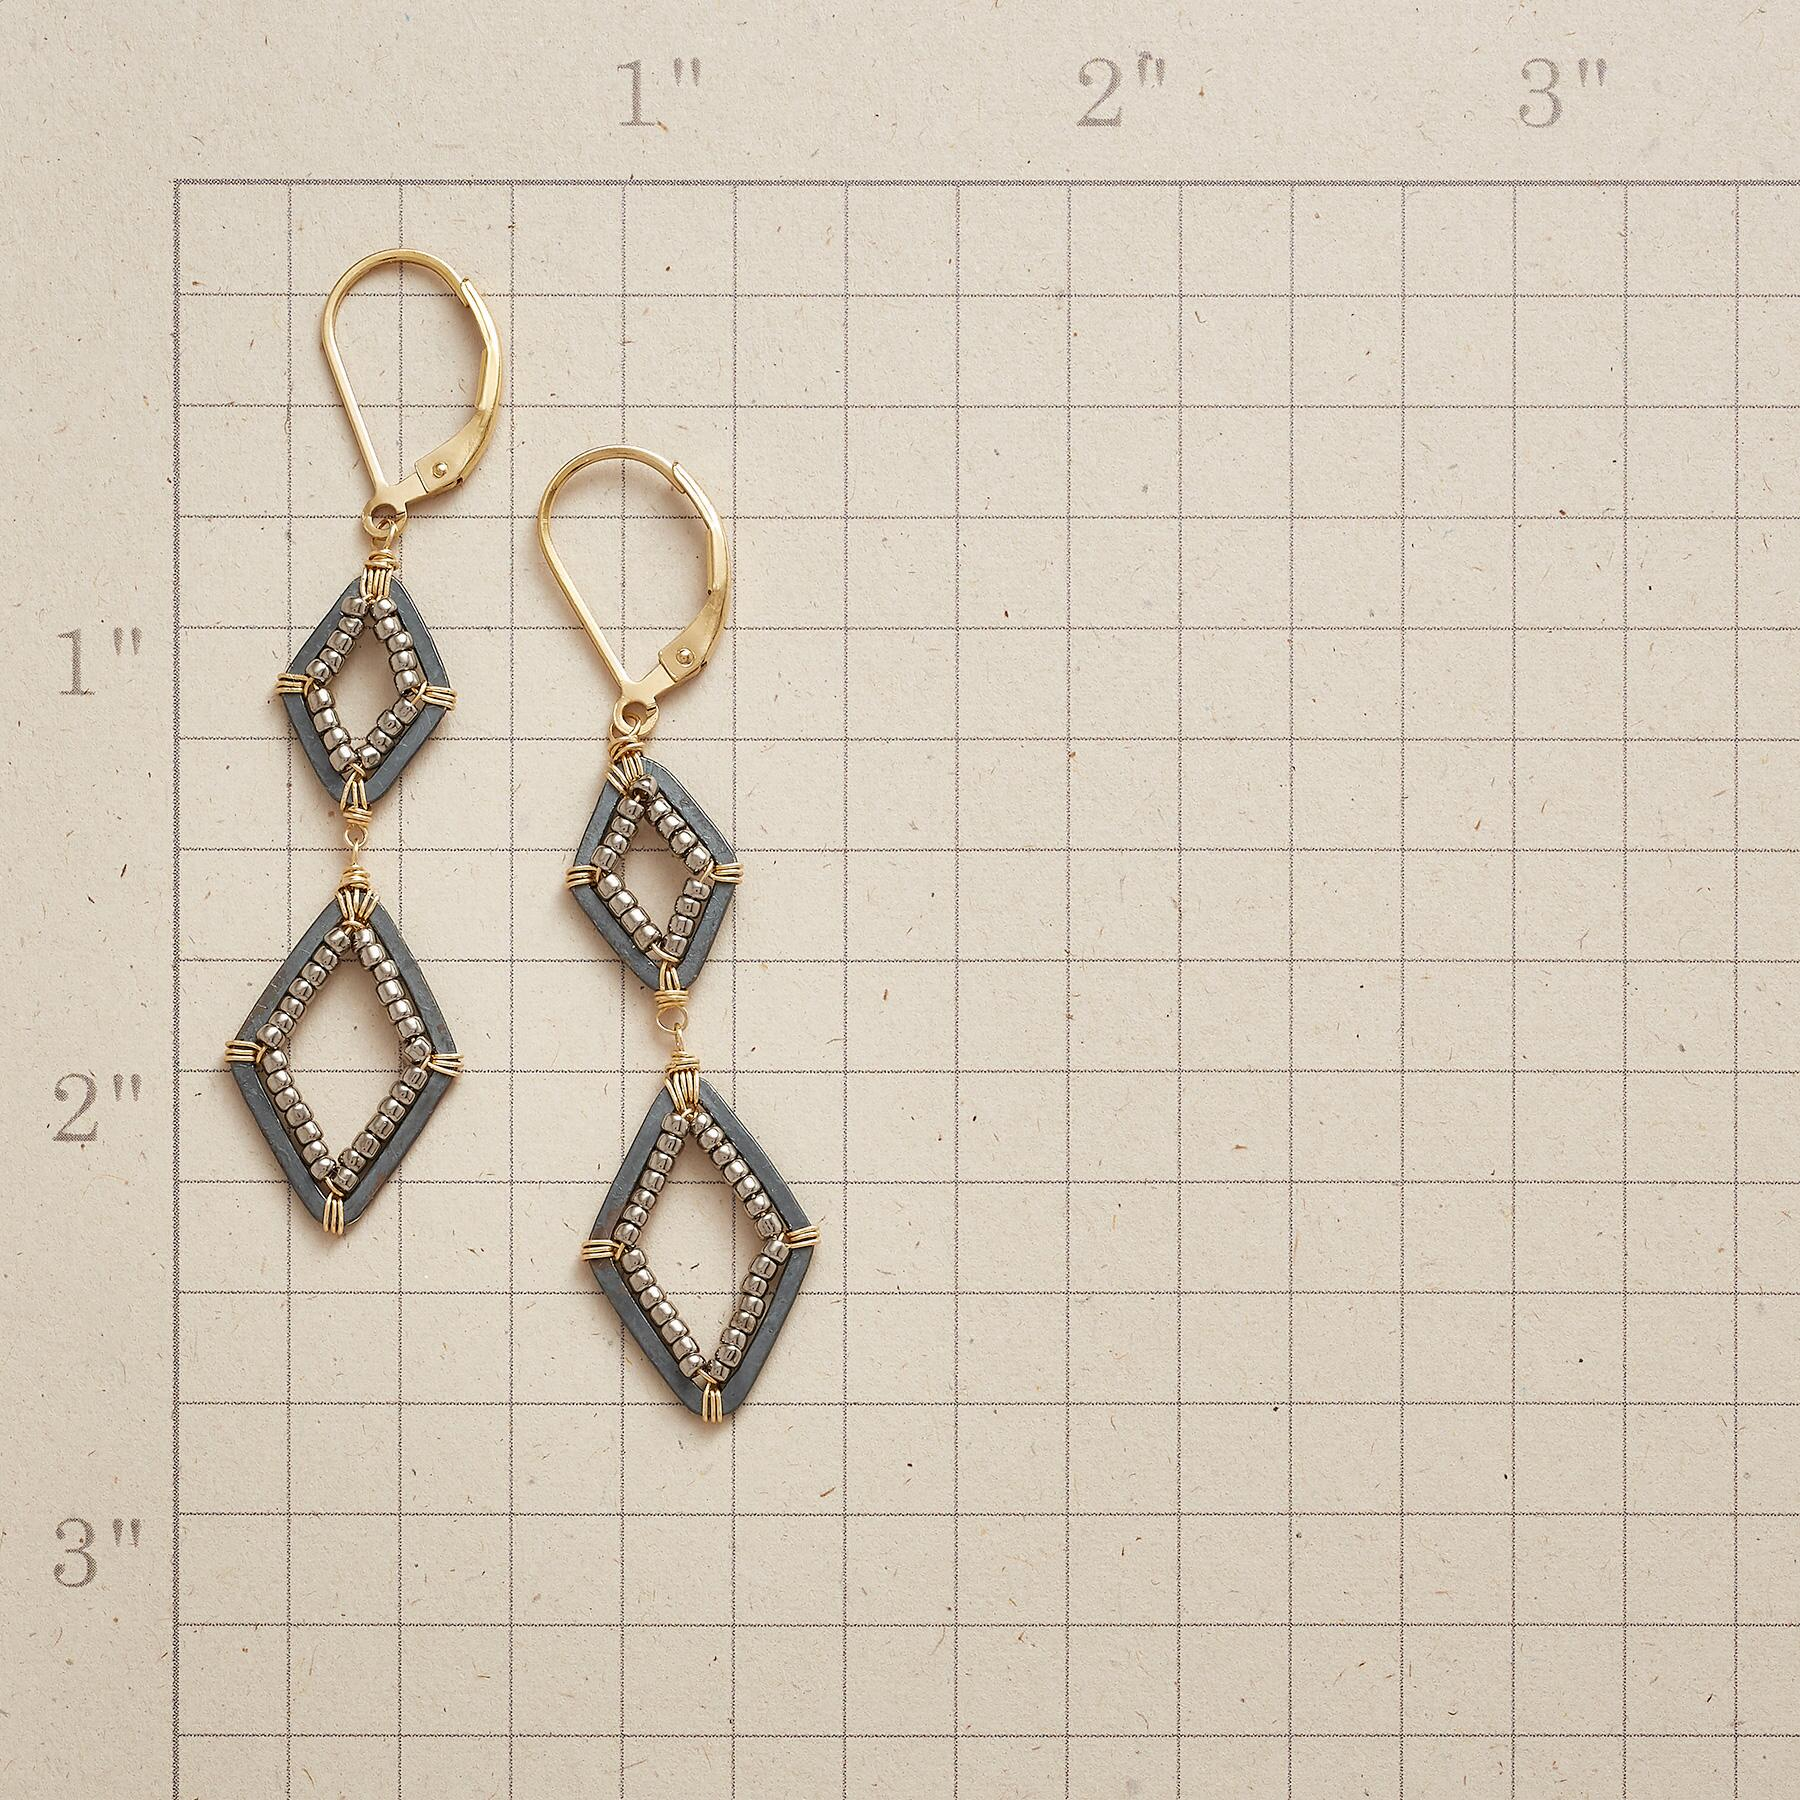 TWO OF A PAIR EARRINGS: View 2